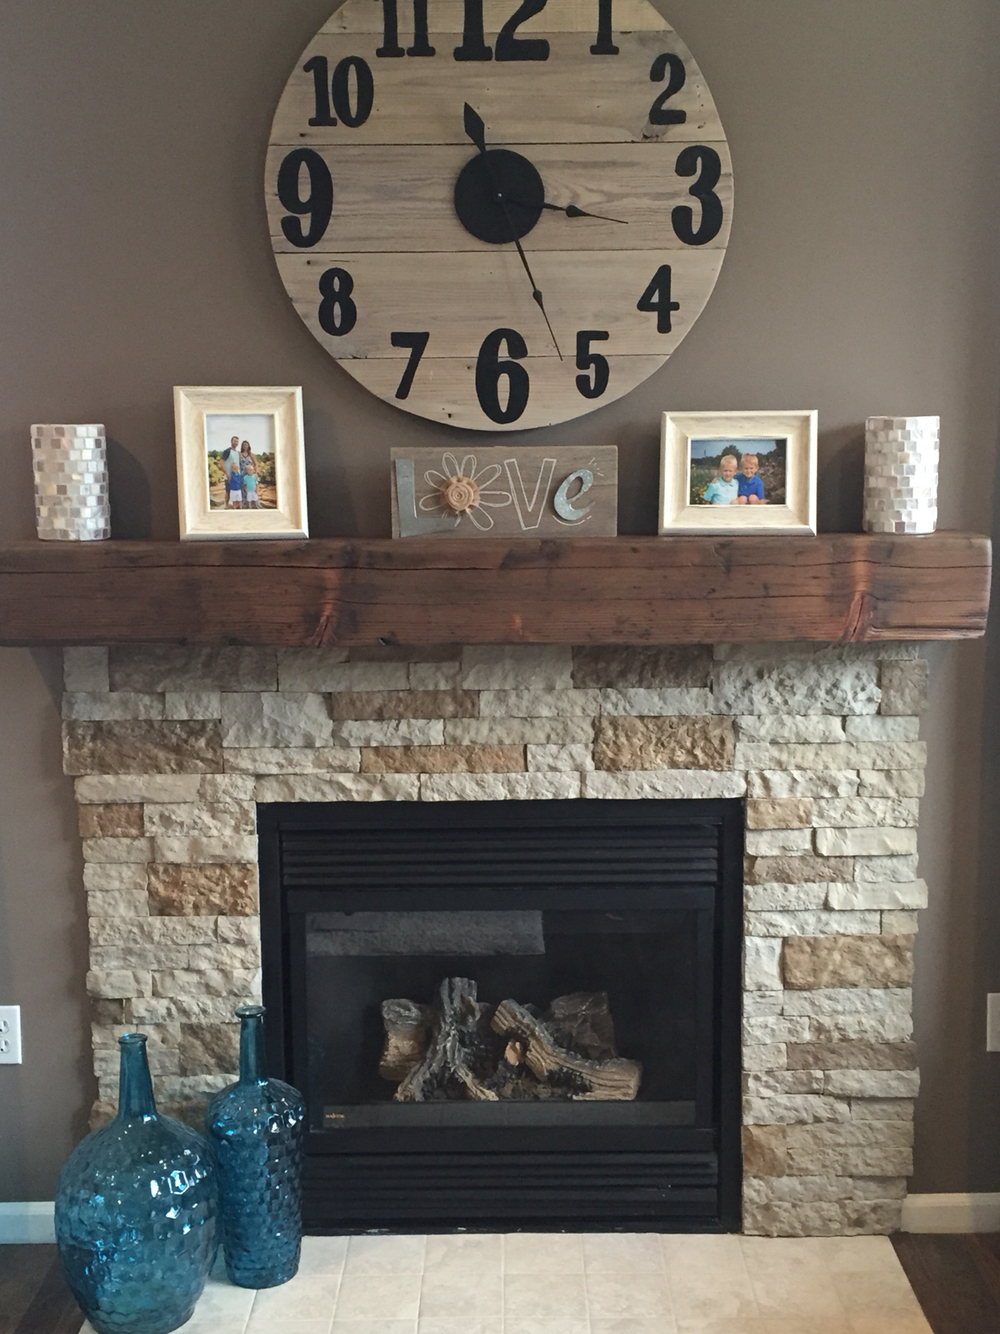 Mdf Fireplace Surround | Lowes Fireplace Mantel | Firplace Mantels